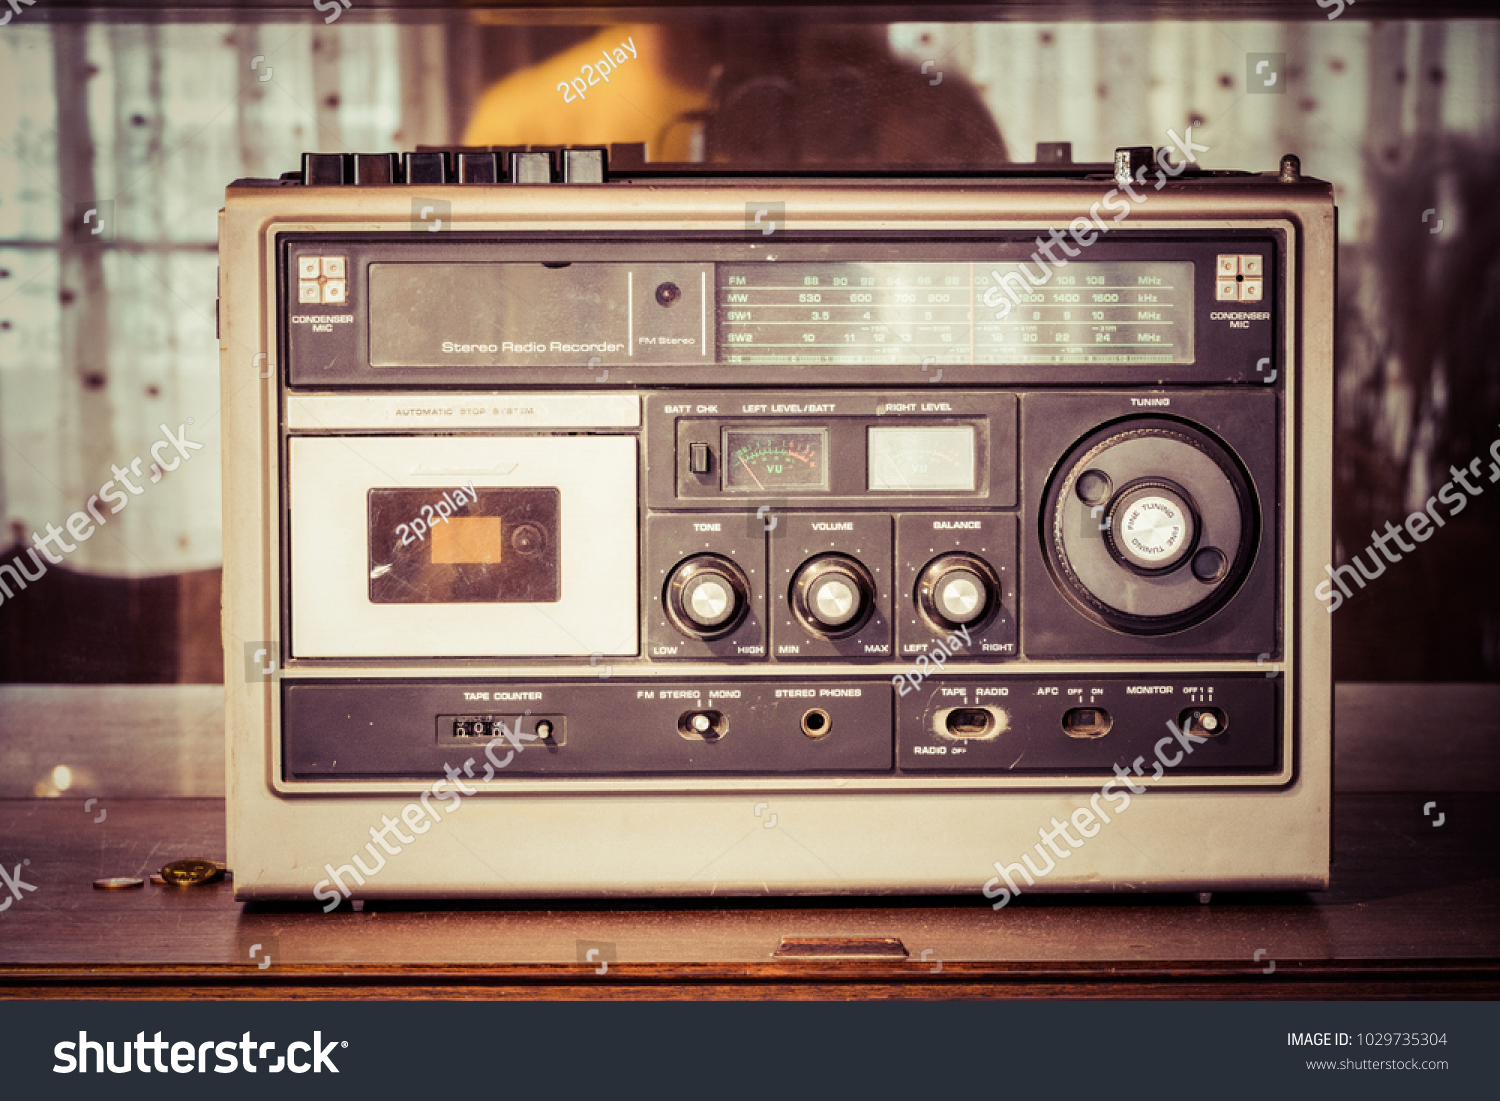 Retro Radio Cassette Stereo Recorder Decoration Stock Photo Edit Room And With In Process Color